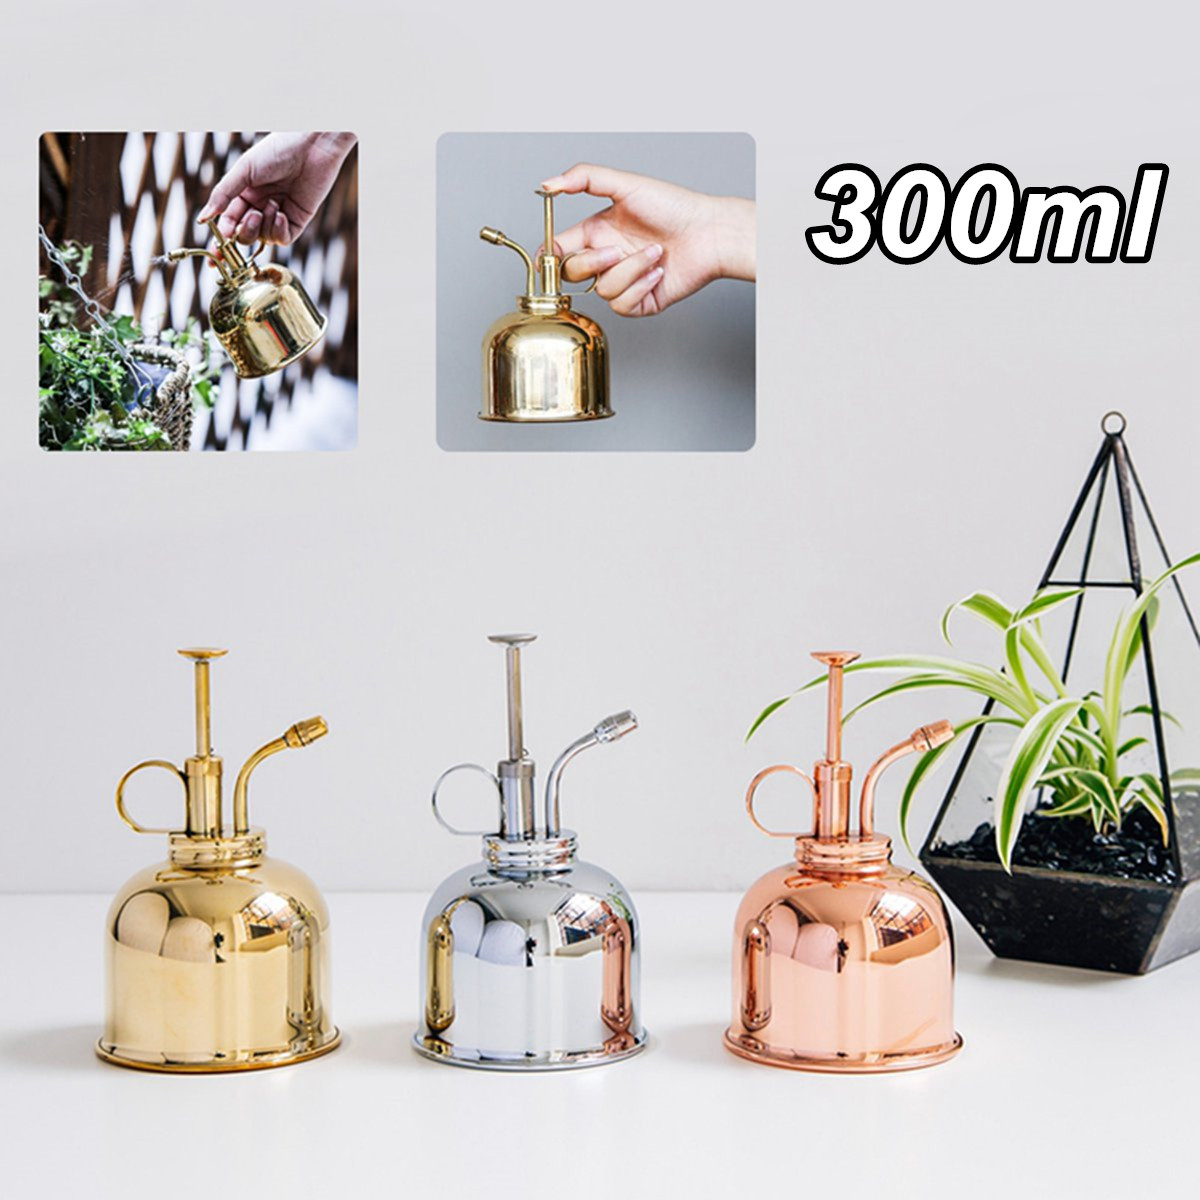 Vintage Plant Water Spray Bottle Mini Brass Home Plant Plunger Spray Watering Can Potted Spraying Tool Desktop Decoration Water Cans     - title=